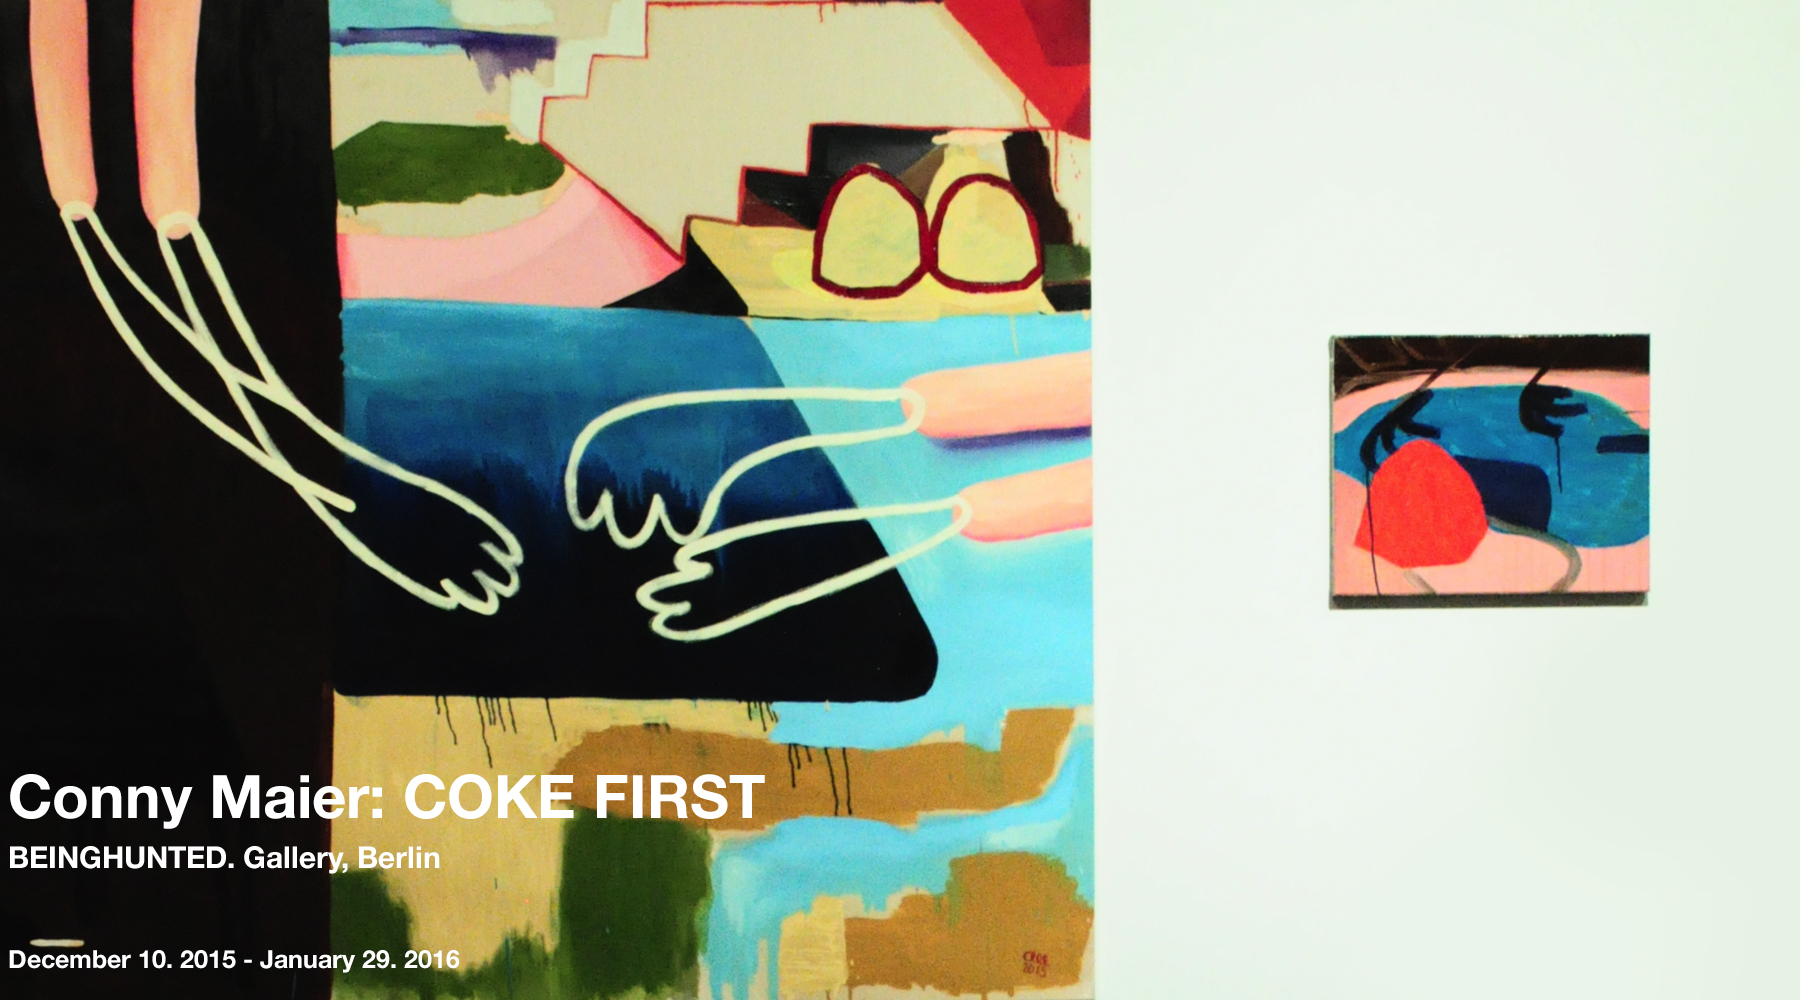 BEINGHUNTED. Gallery: Conny Maier COKE FIRST